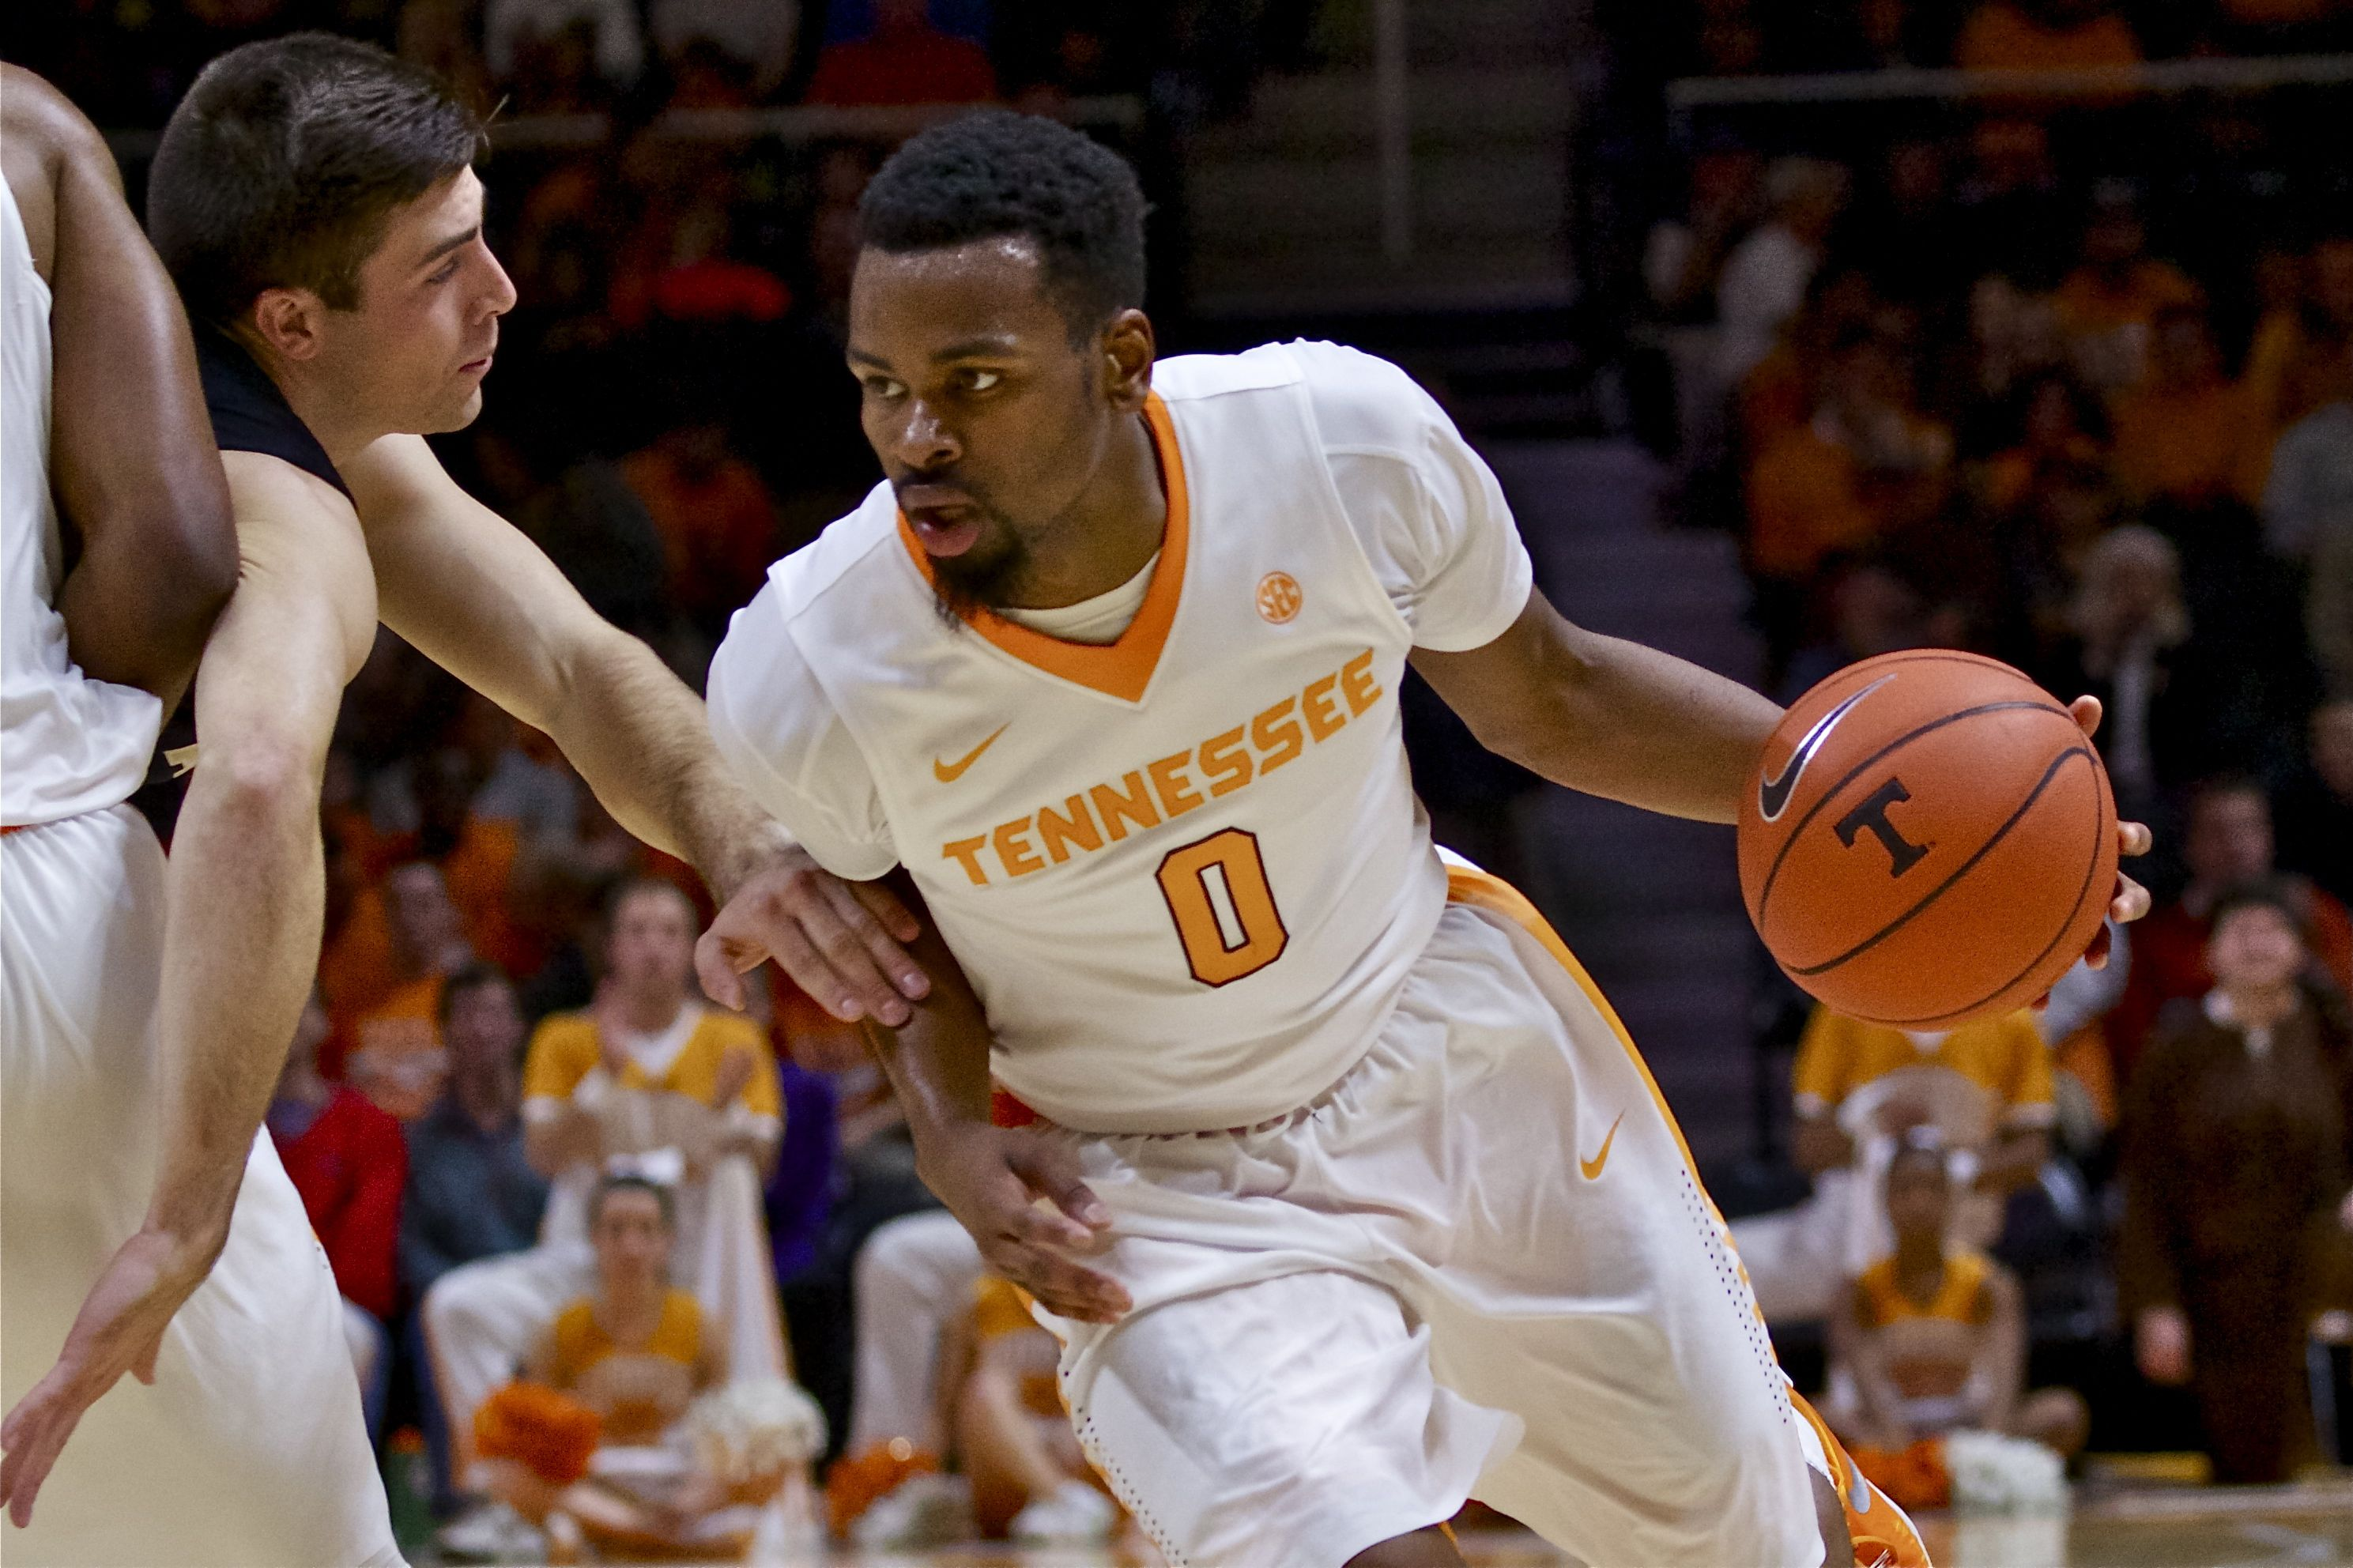 Photo Gallery: Tennessee Basketball vs. Army 11-24-15